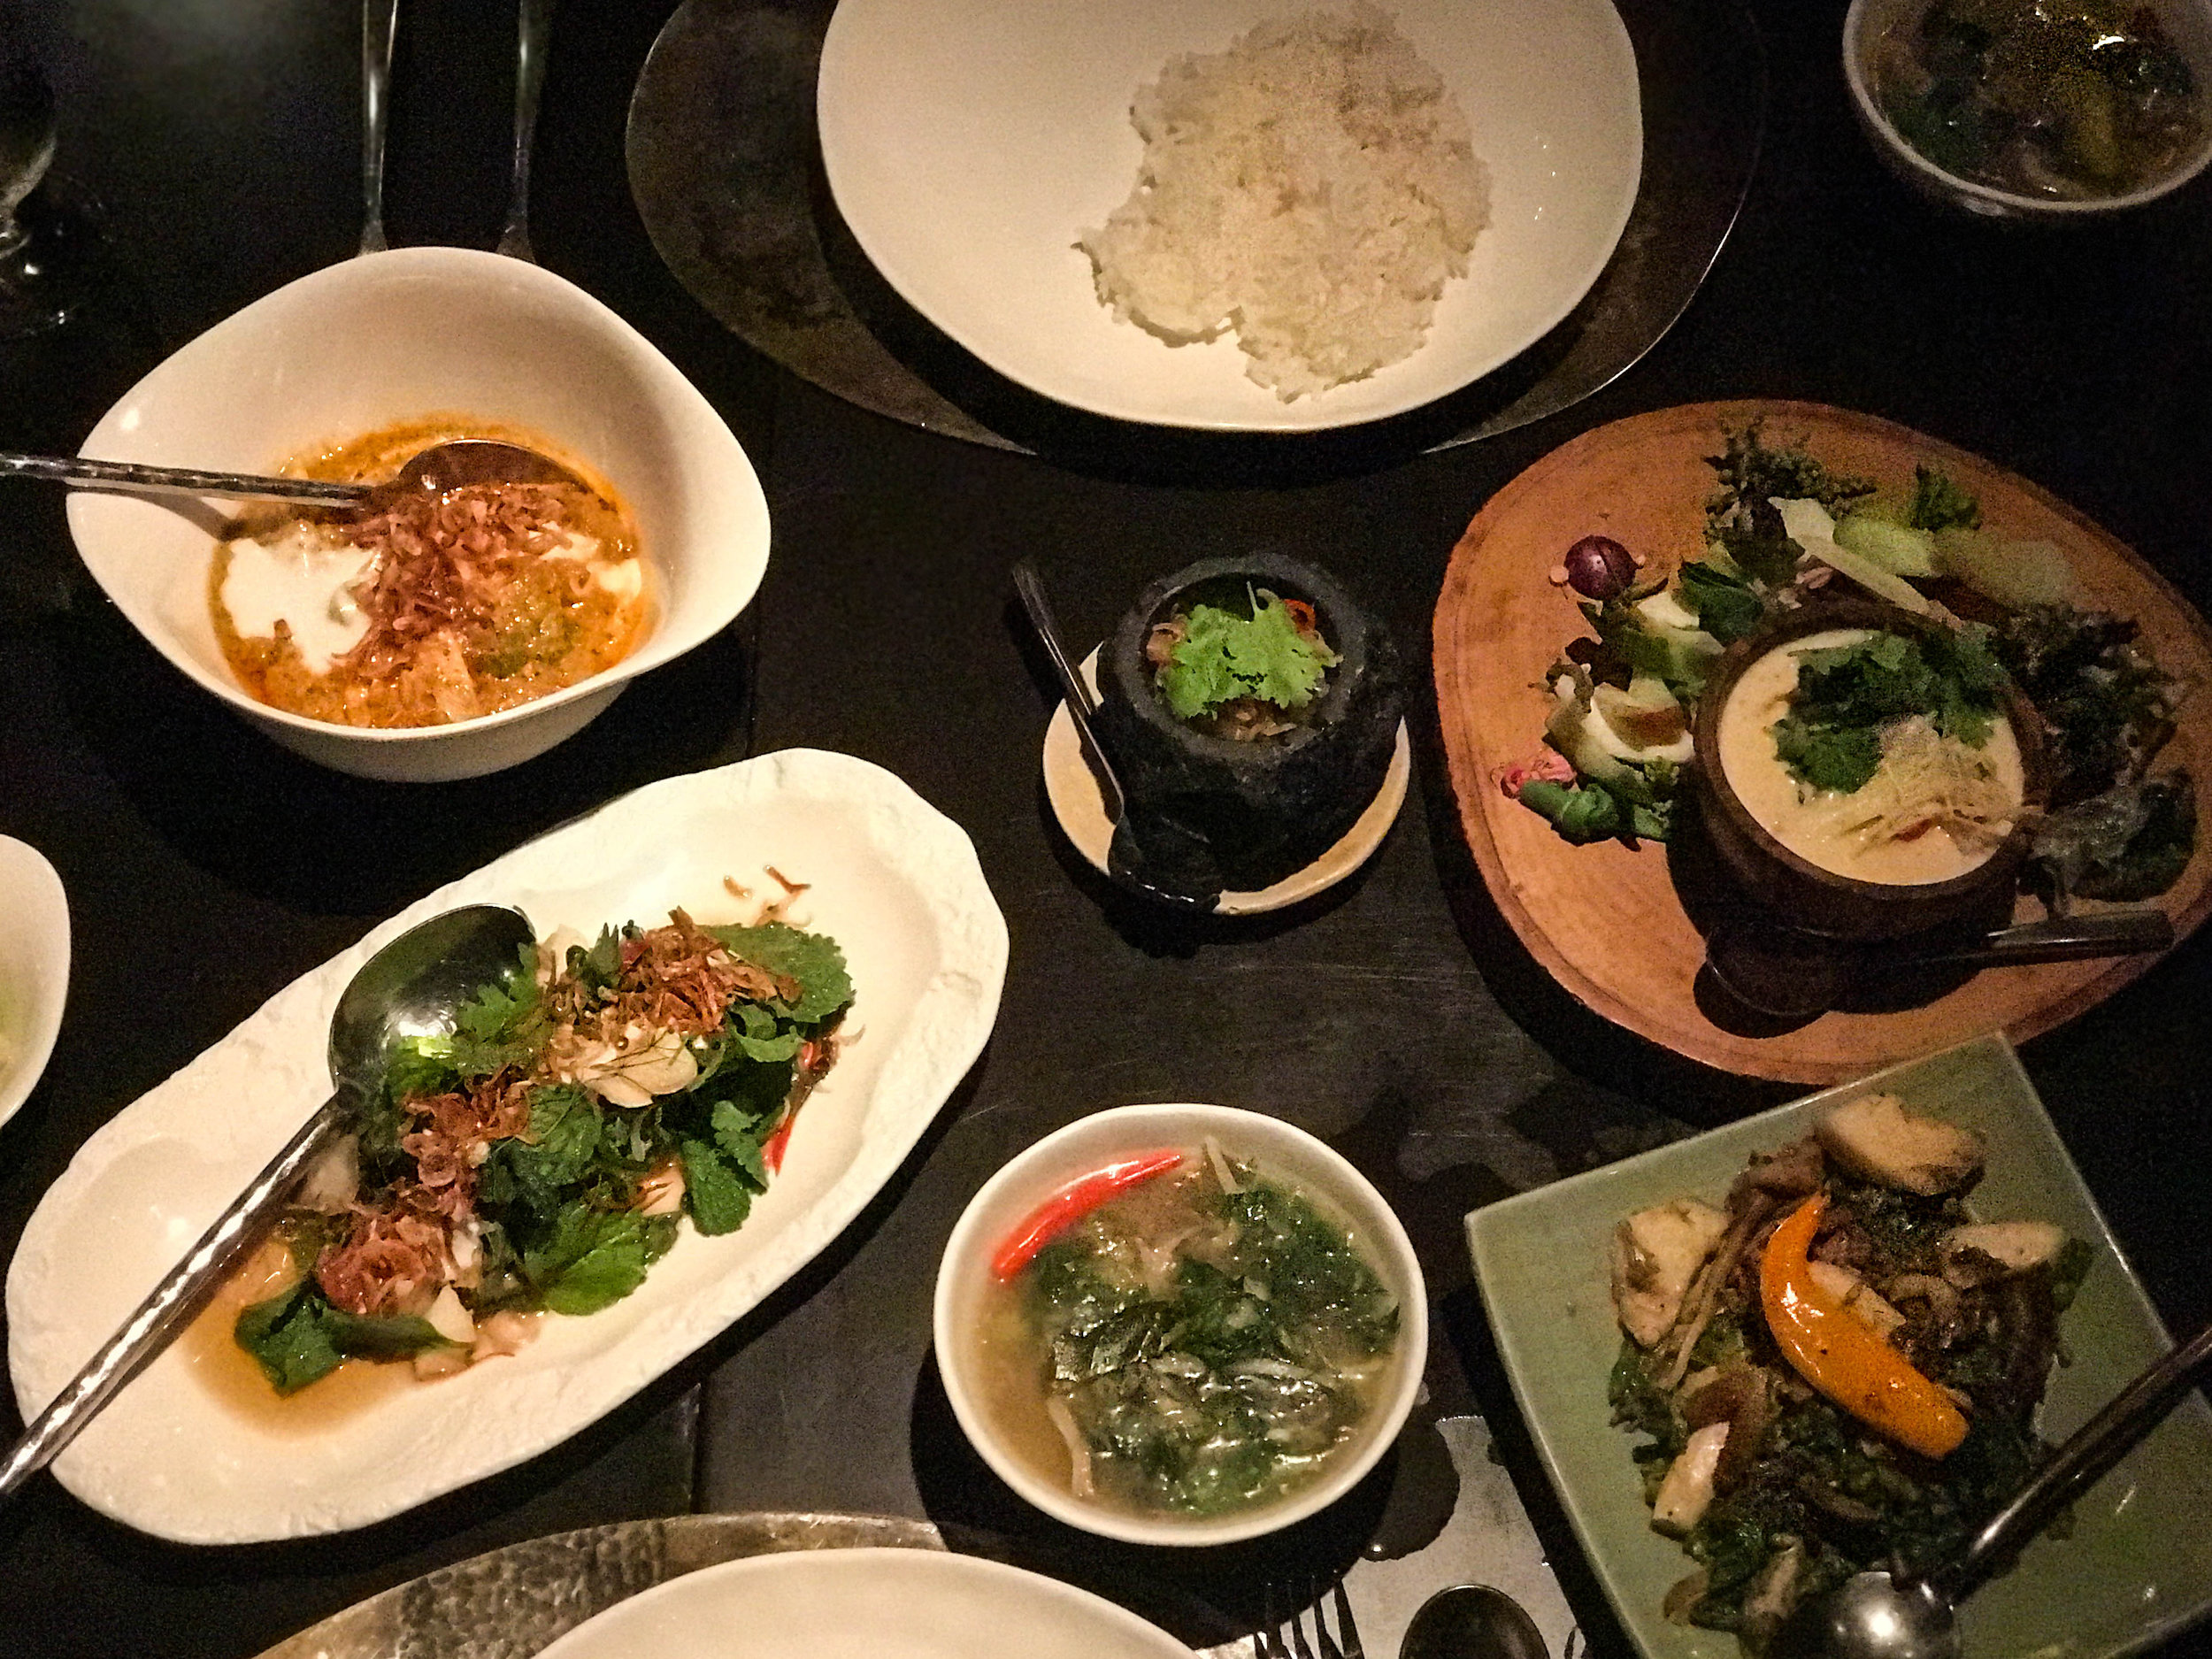 """Main course(s) featuring """"Gapek"""" local water bamboo stir-fried with chili, holy basil and young peppercorns, curry of local greens with Ajat, spicy relish, and Issan vegetable soup."""